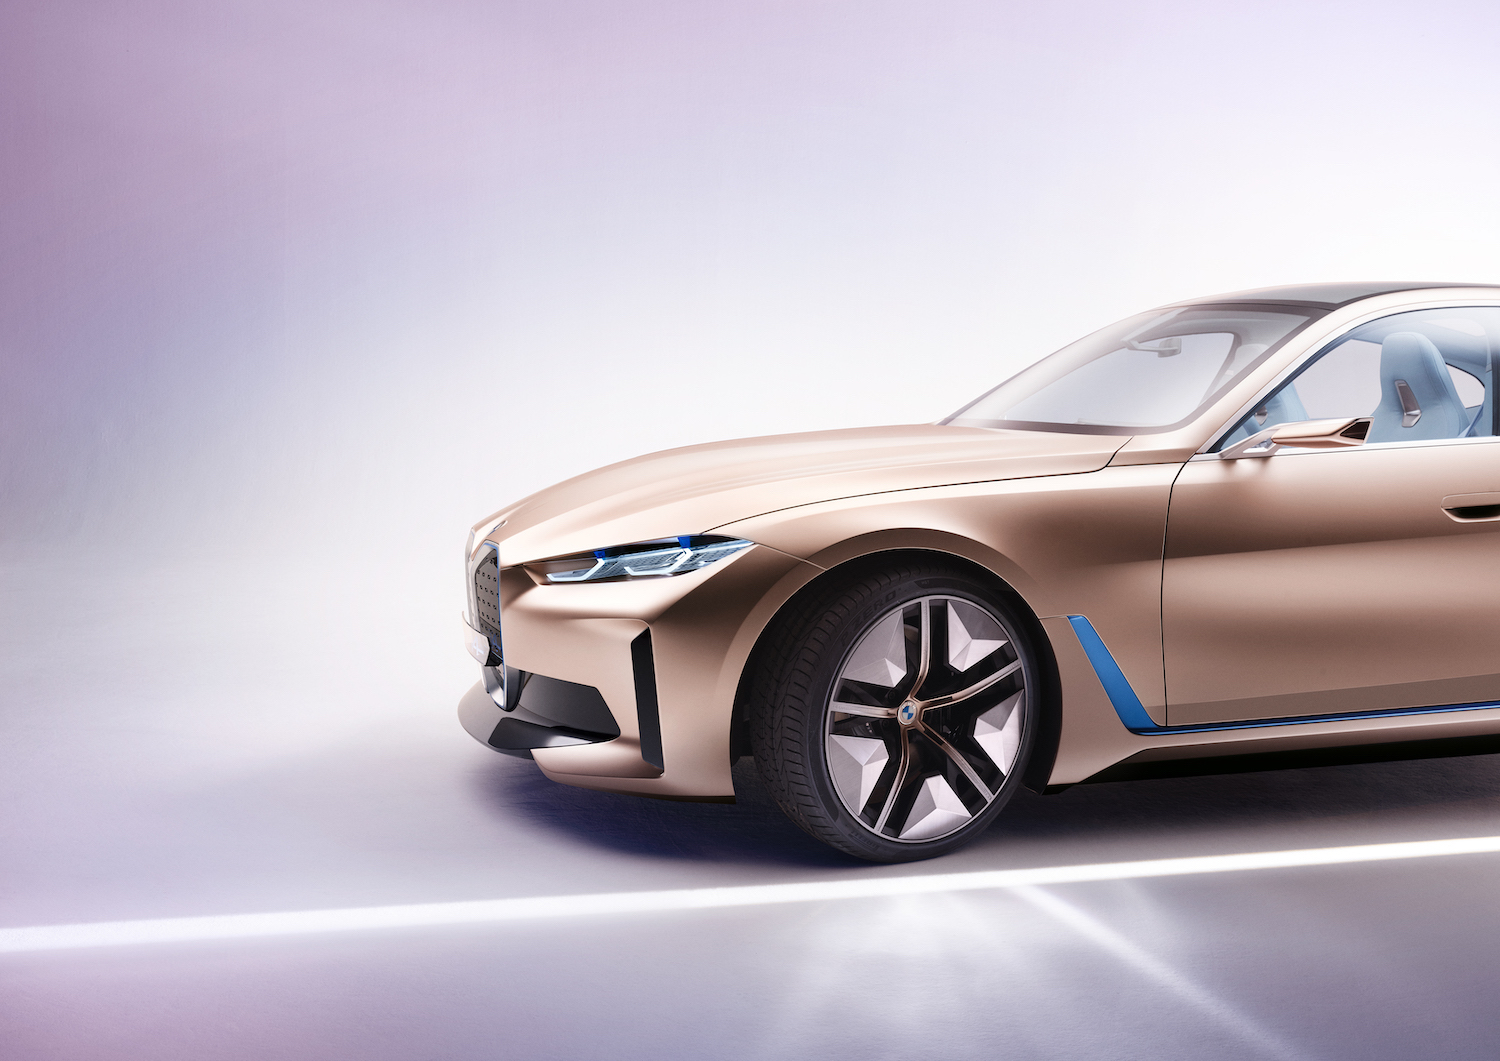 2021 BMW Concept i4 front side-view